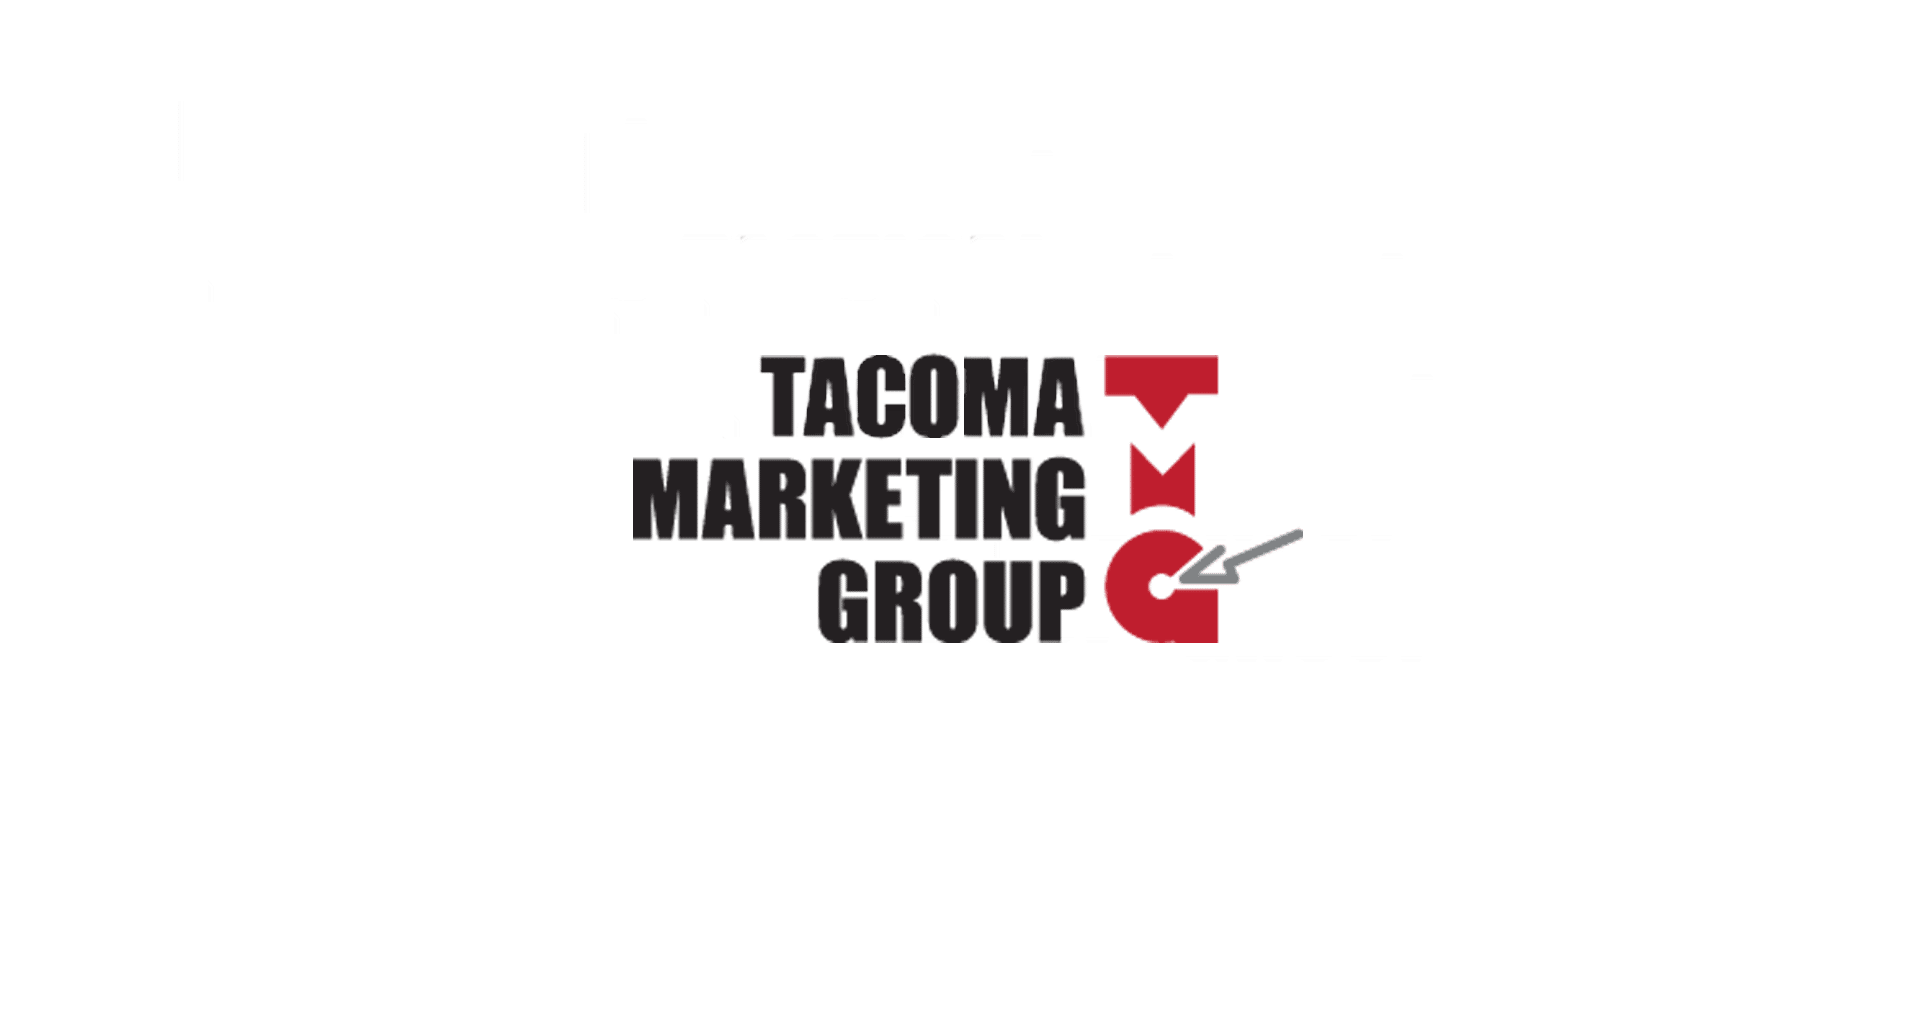 Tacoma Marketing Group